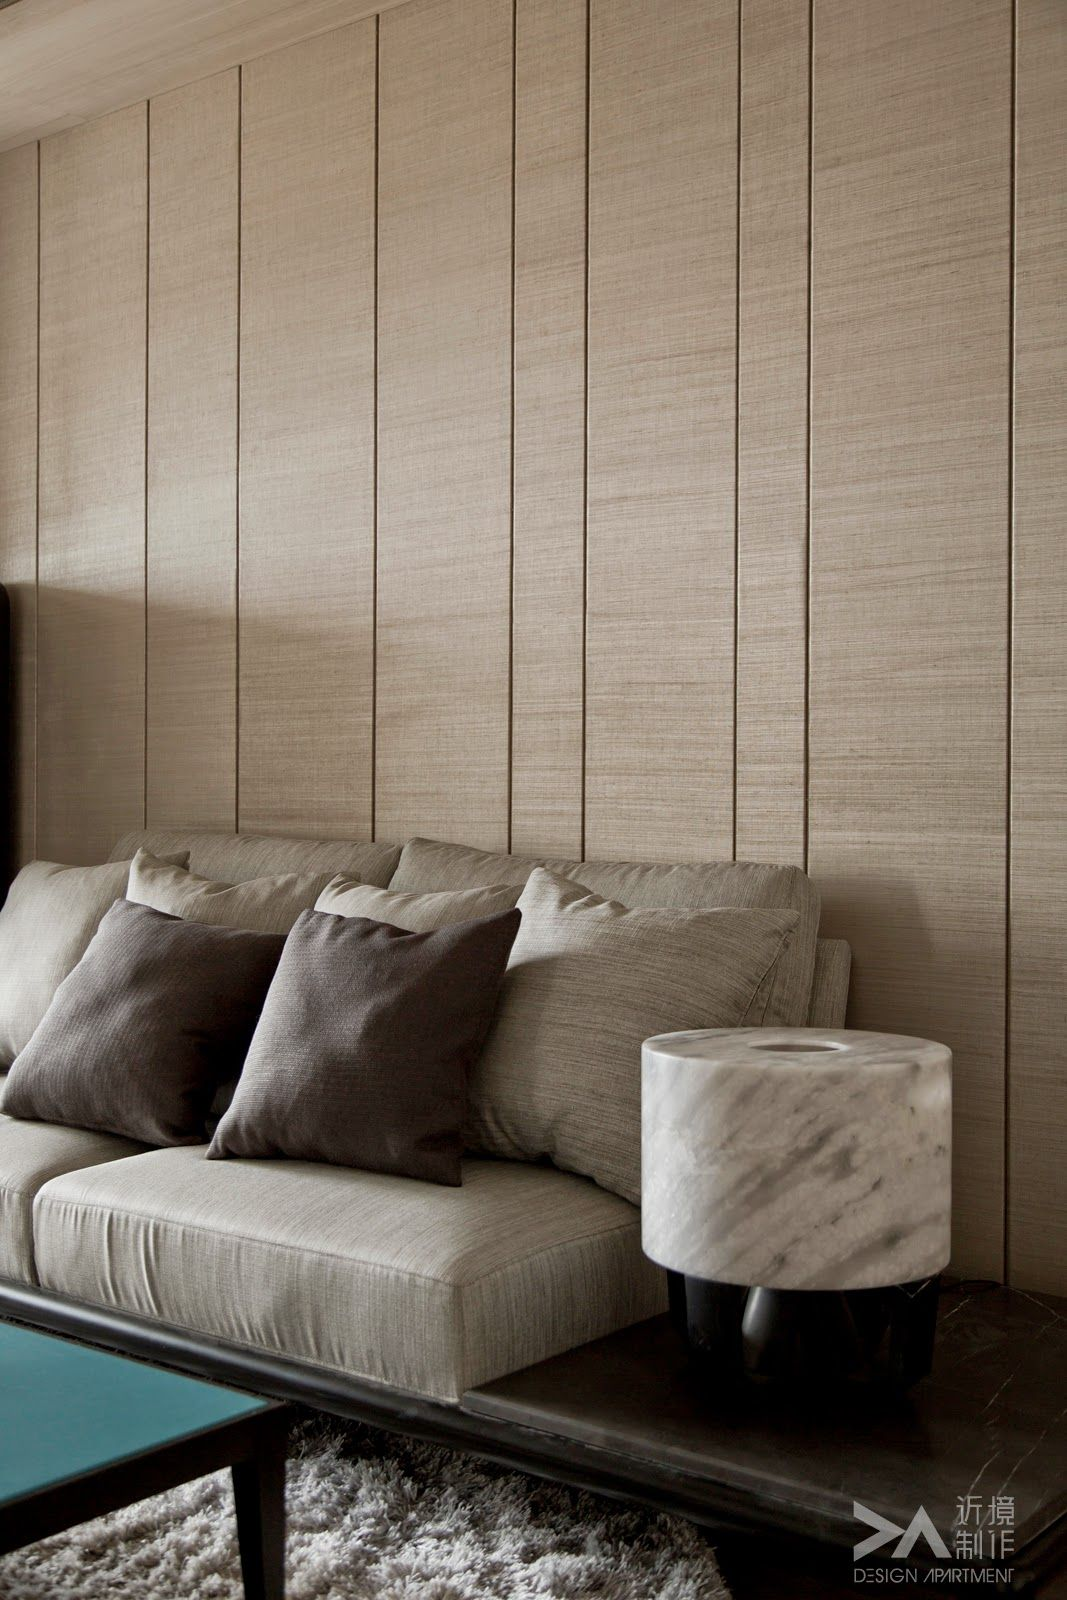 Wood Paneled Room Design: Modern Living Room Wall, Modern Interior